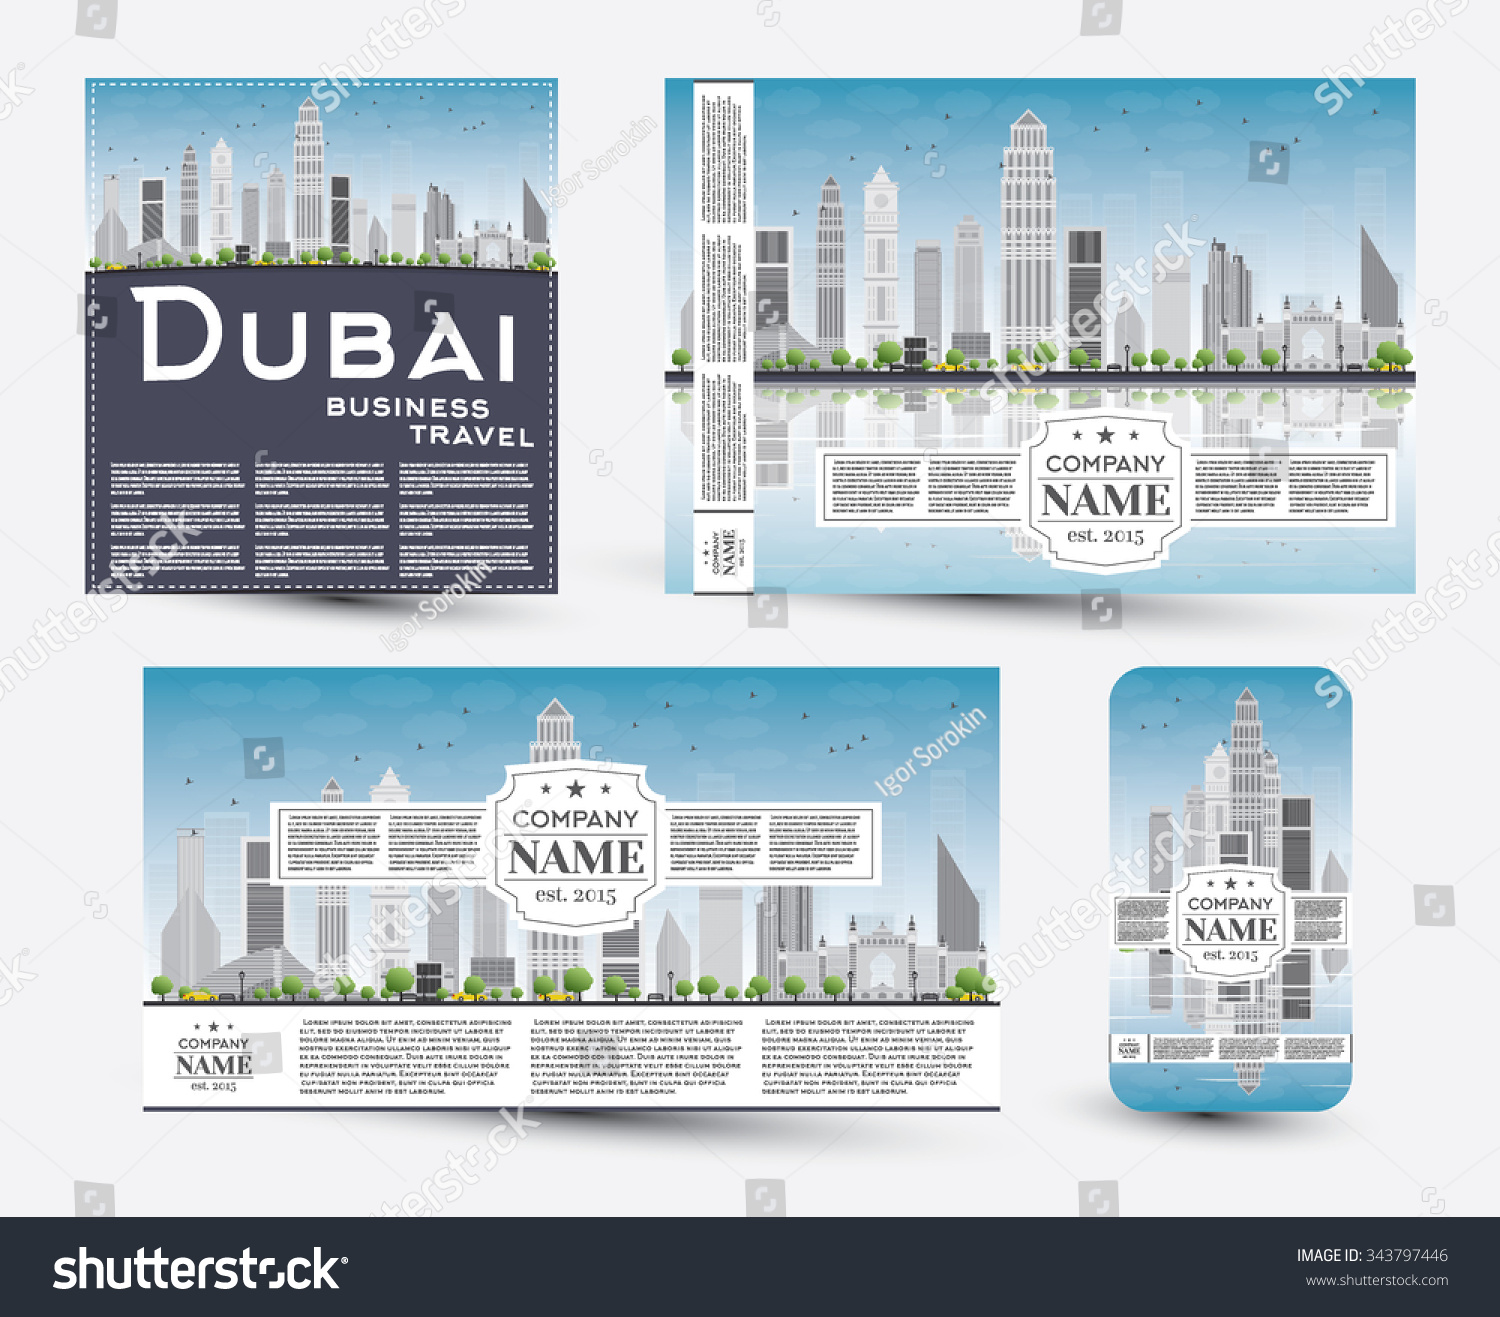 Corporate Identity Templates Set With Dubai Skyline Vector Illustration Business Travel And Tourism Concept